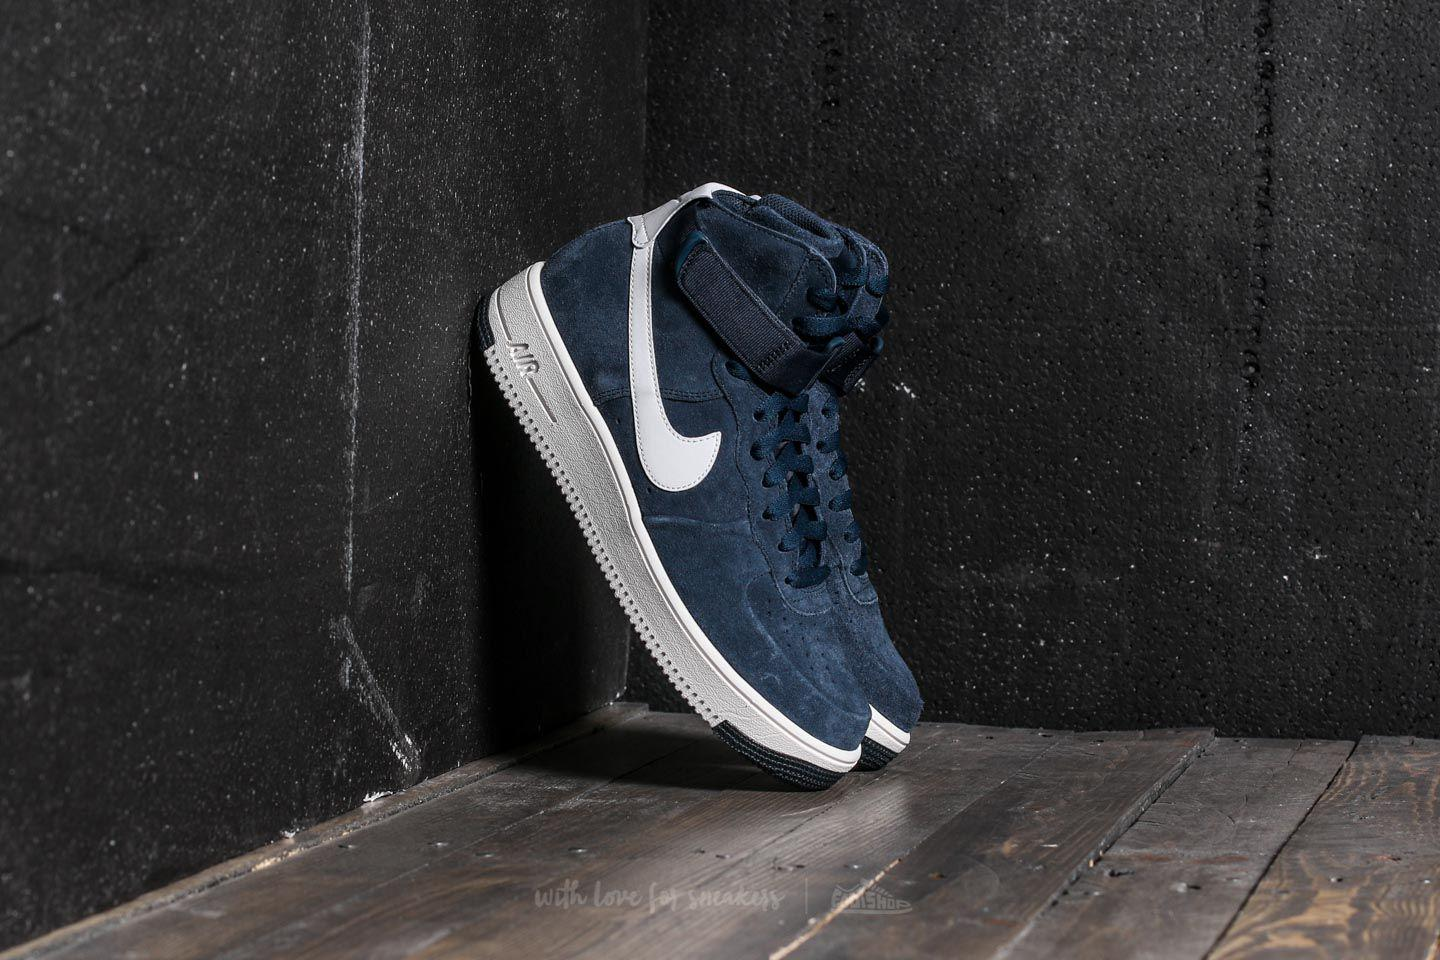 Nike. Men's Blue Air Force 1 Ultraforce Hi Armory Navy/ Summit White